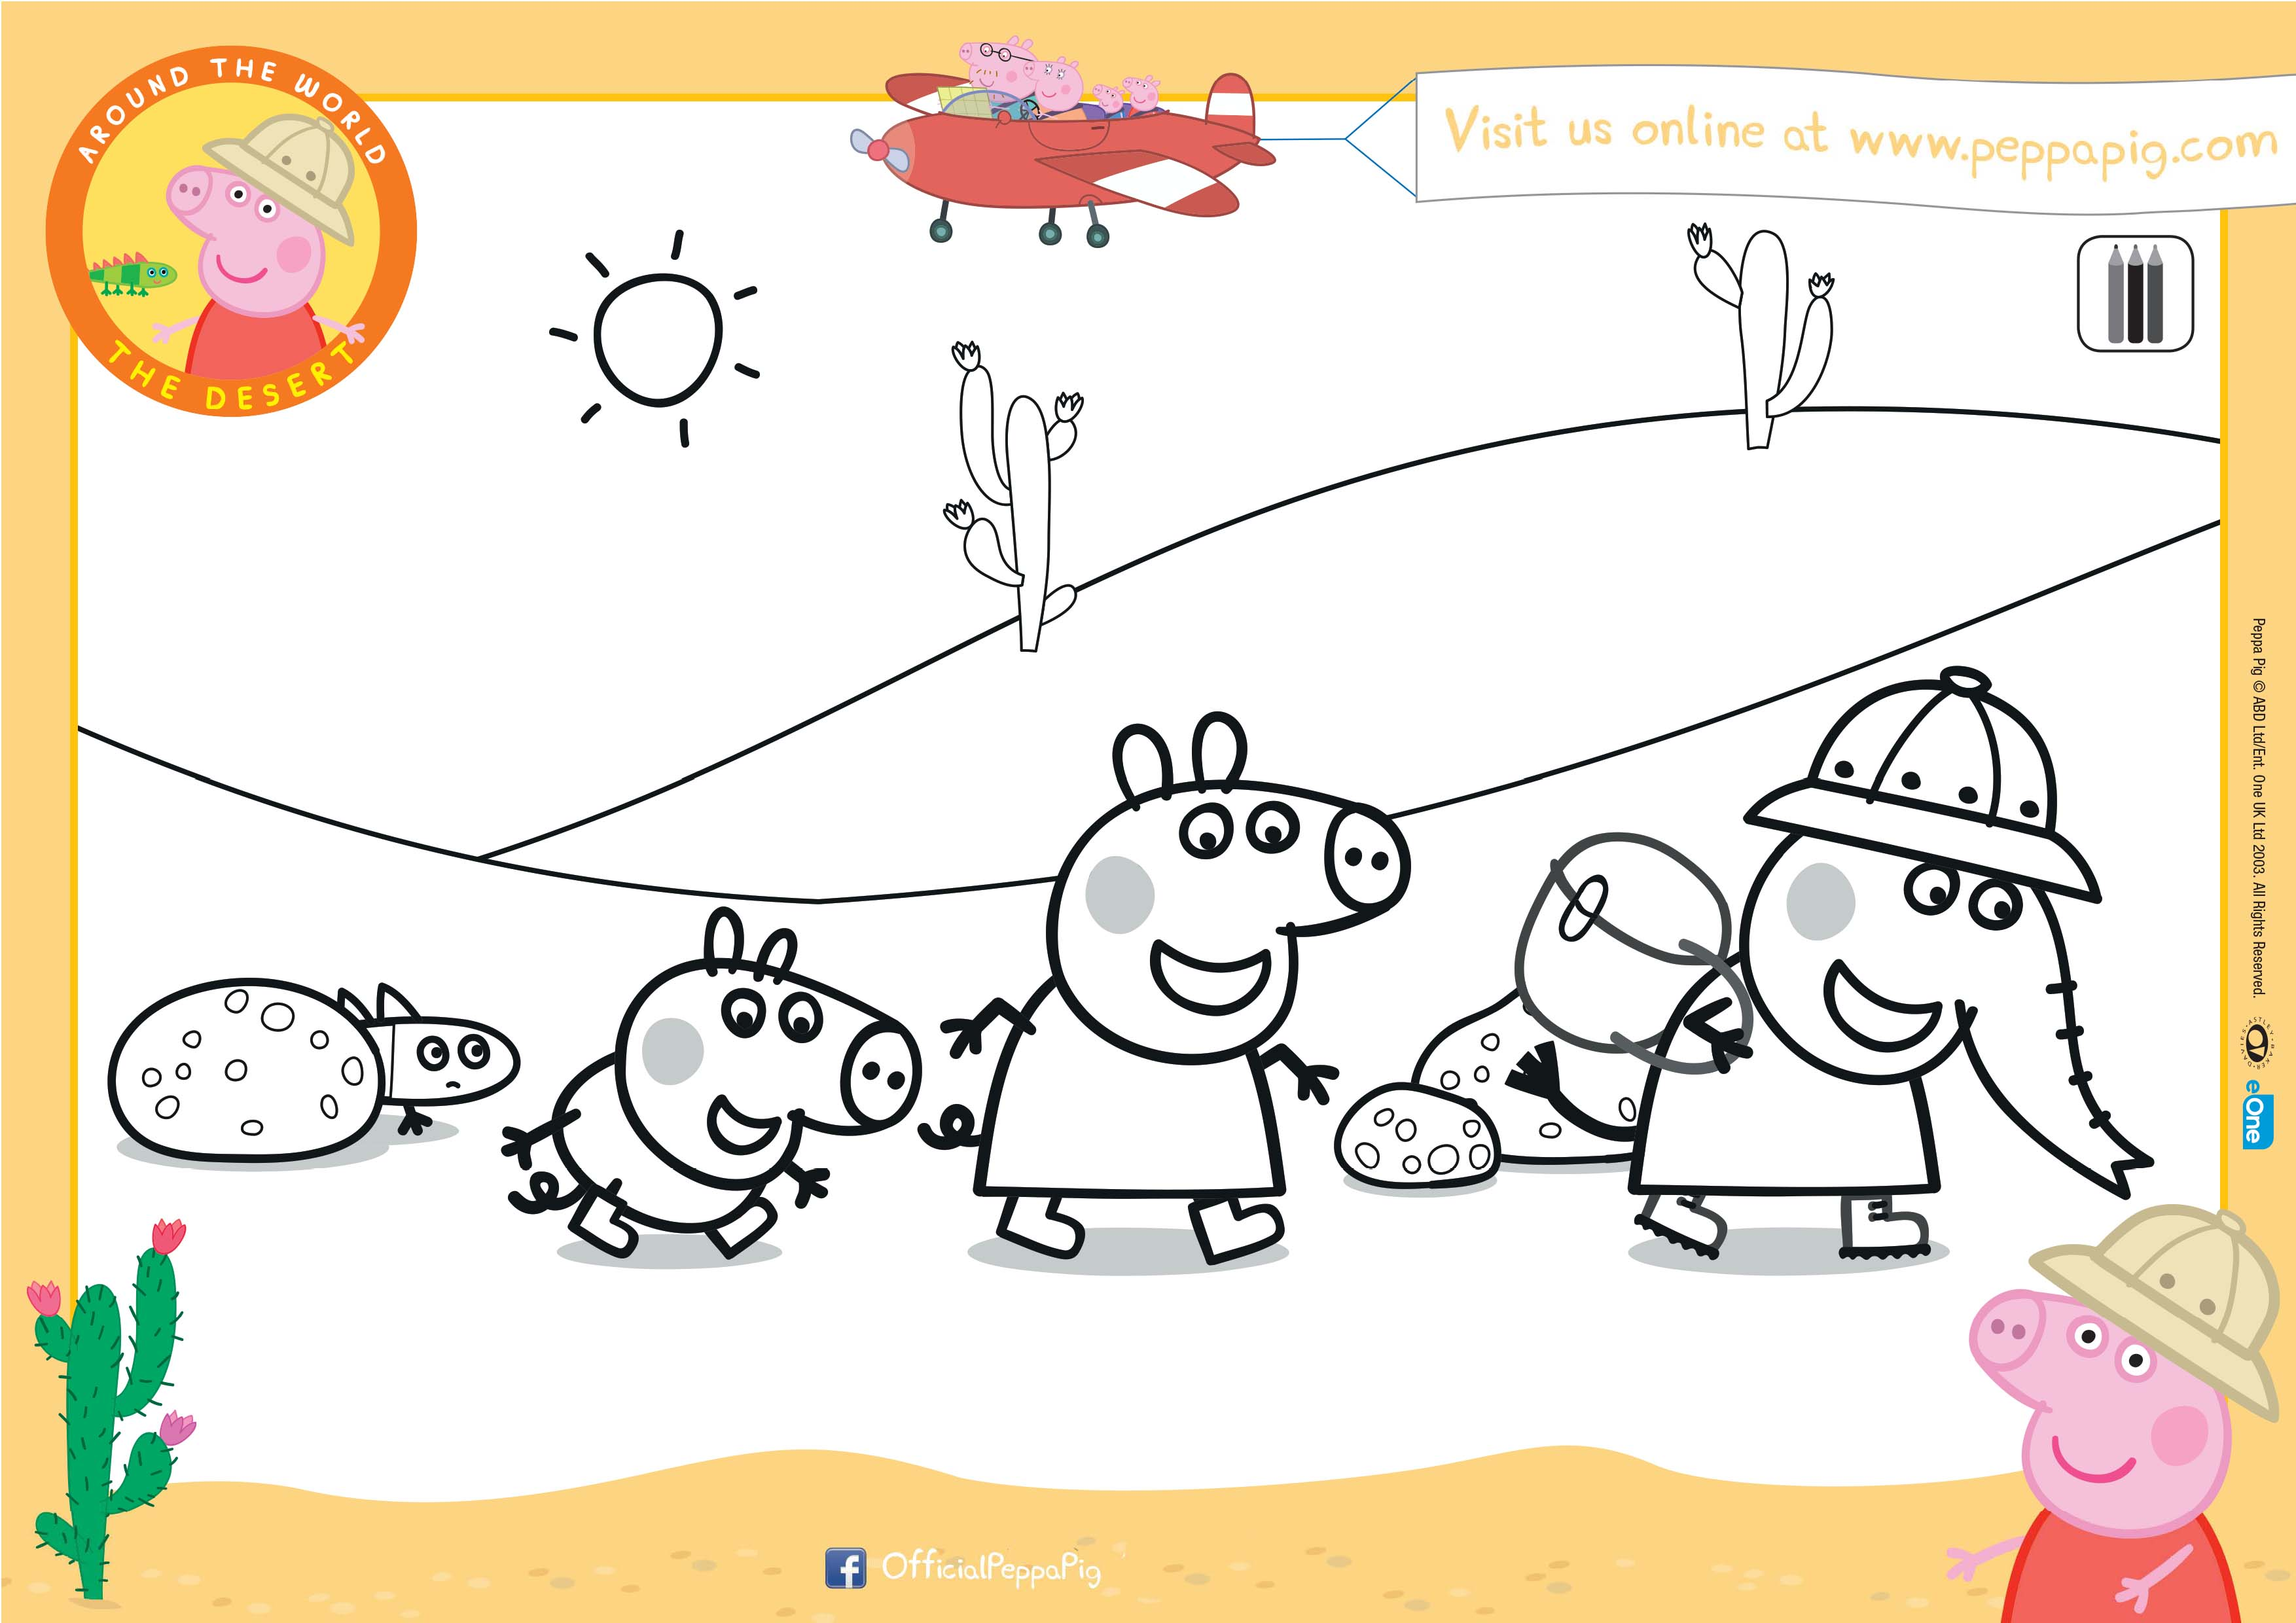 It's just a picture of Wild Peppa Pig Printable